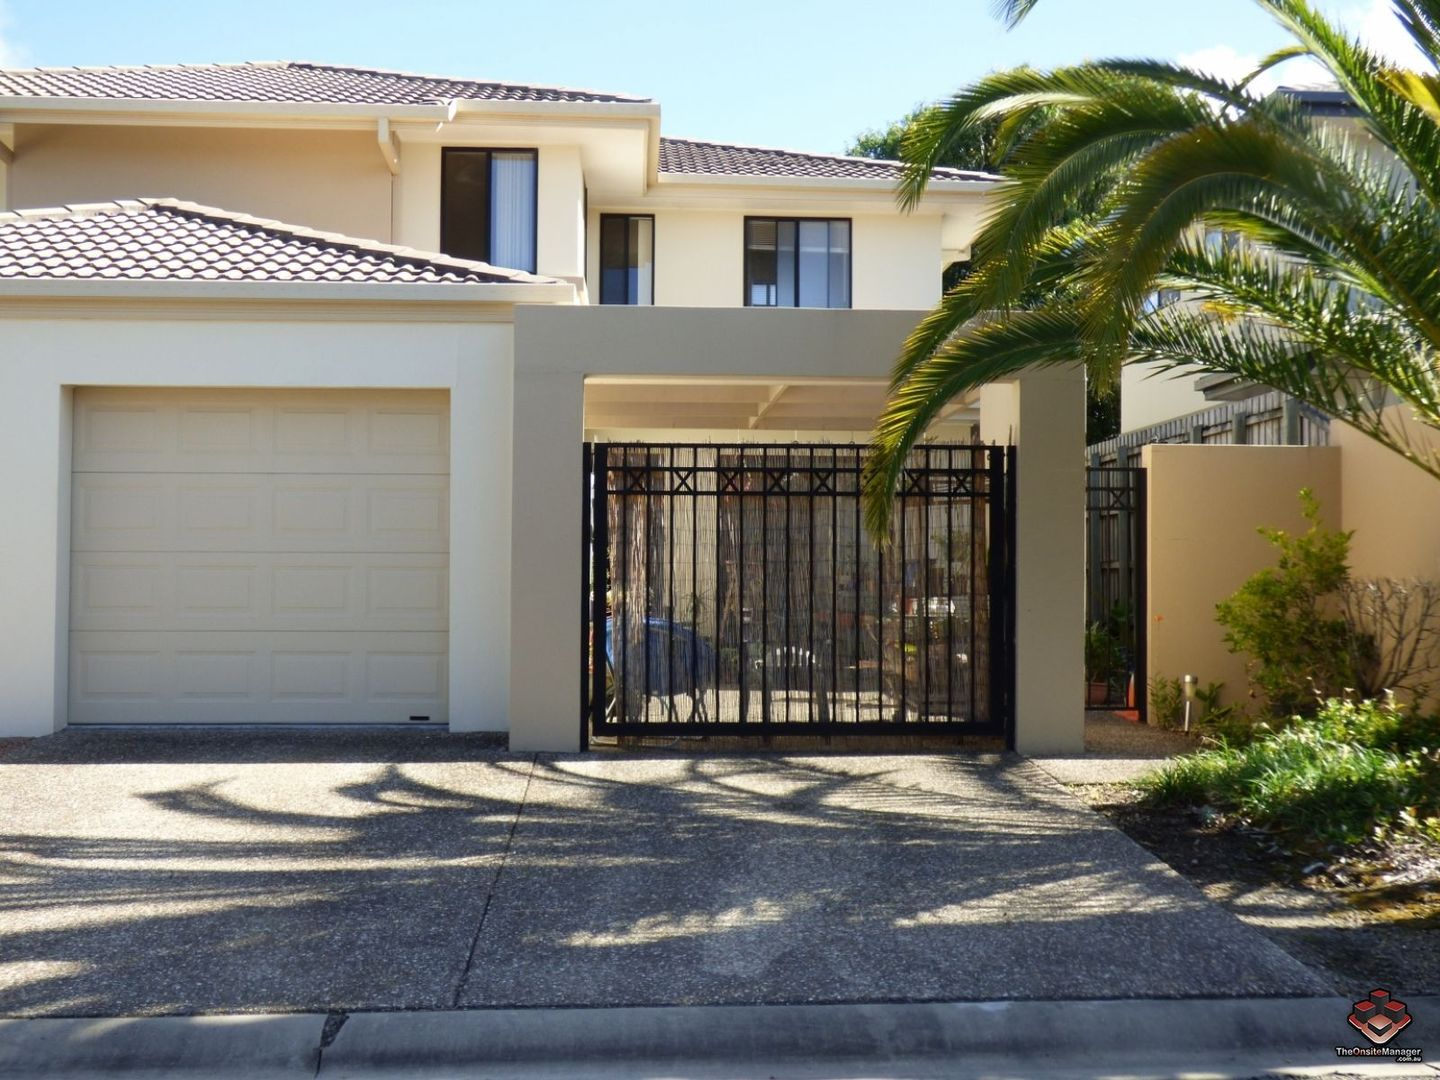 15/2 Tuition Street, Upper Coomera QLD 4209, Image 0